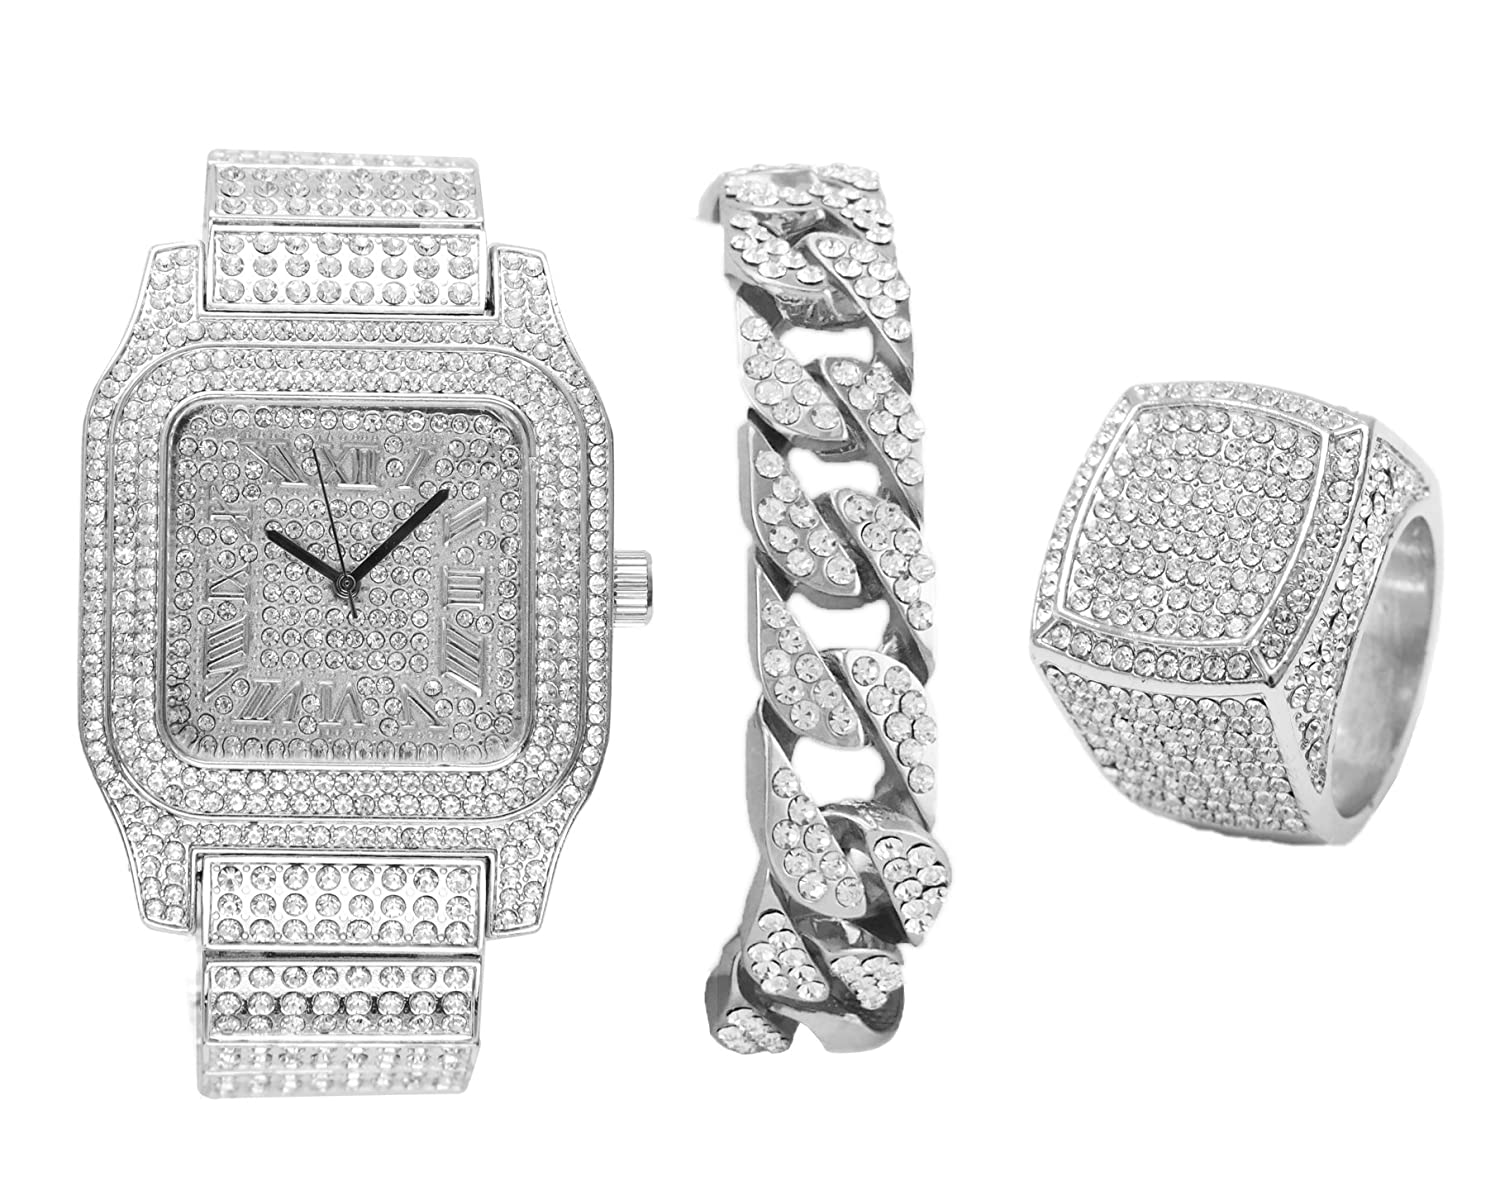 b0e19f747638a Diamonds Shining Everywhere with This 3pc Hip Hop Set Ice Watch Cuban  Bracelet and Ring - 0513Silver 3pcs